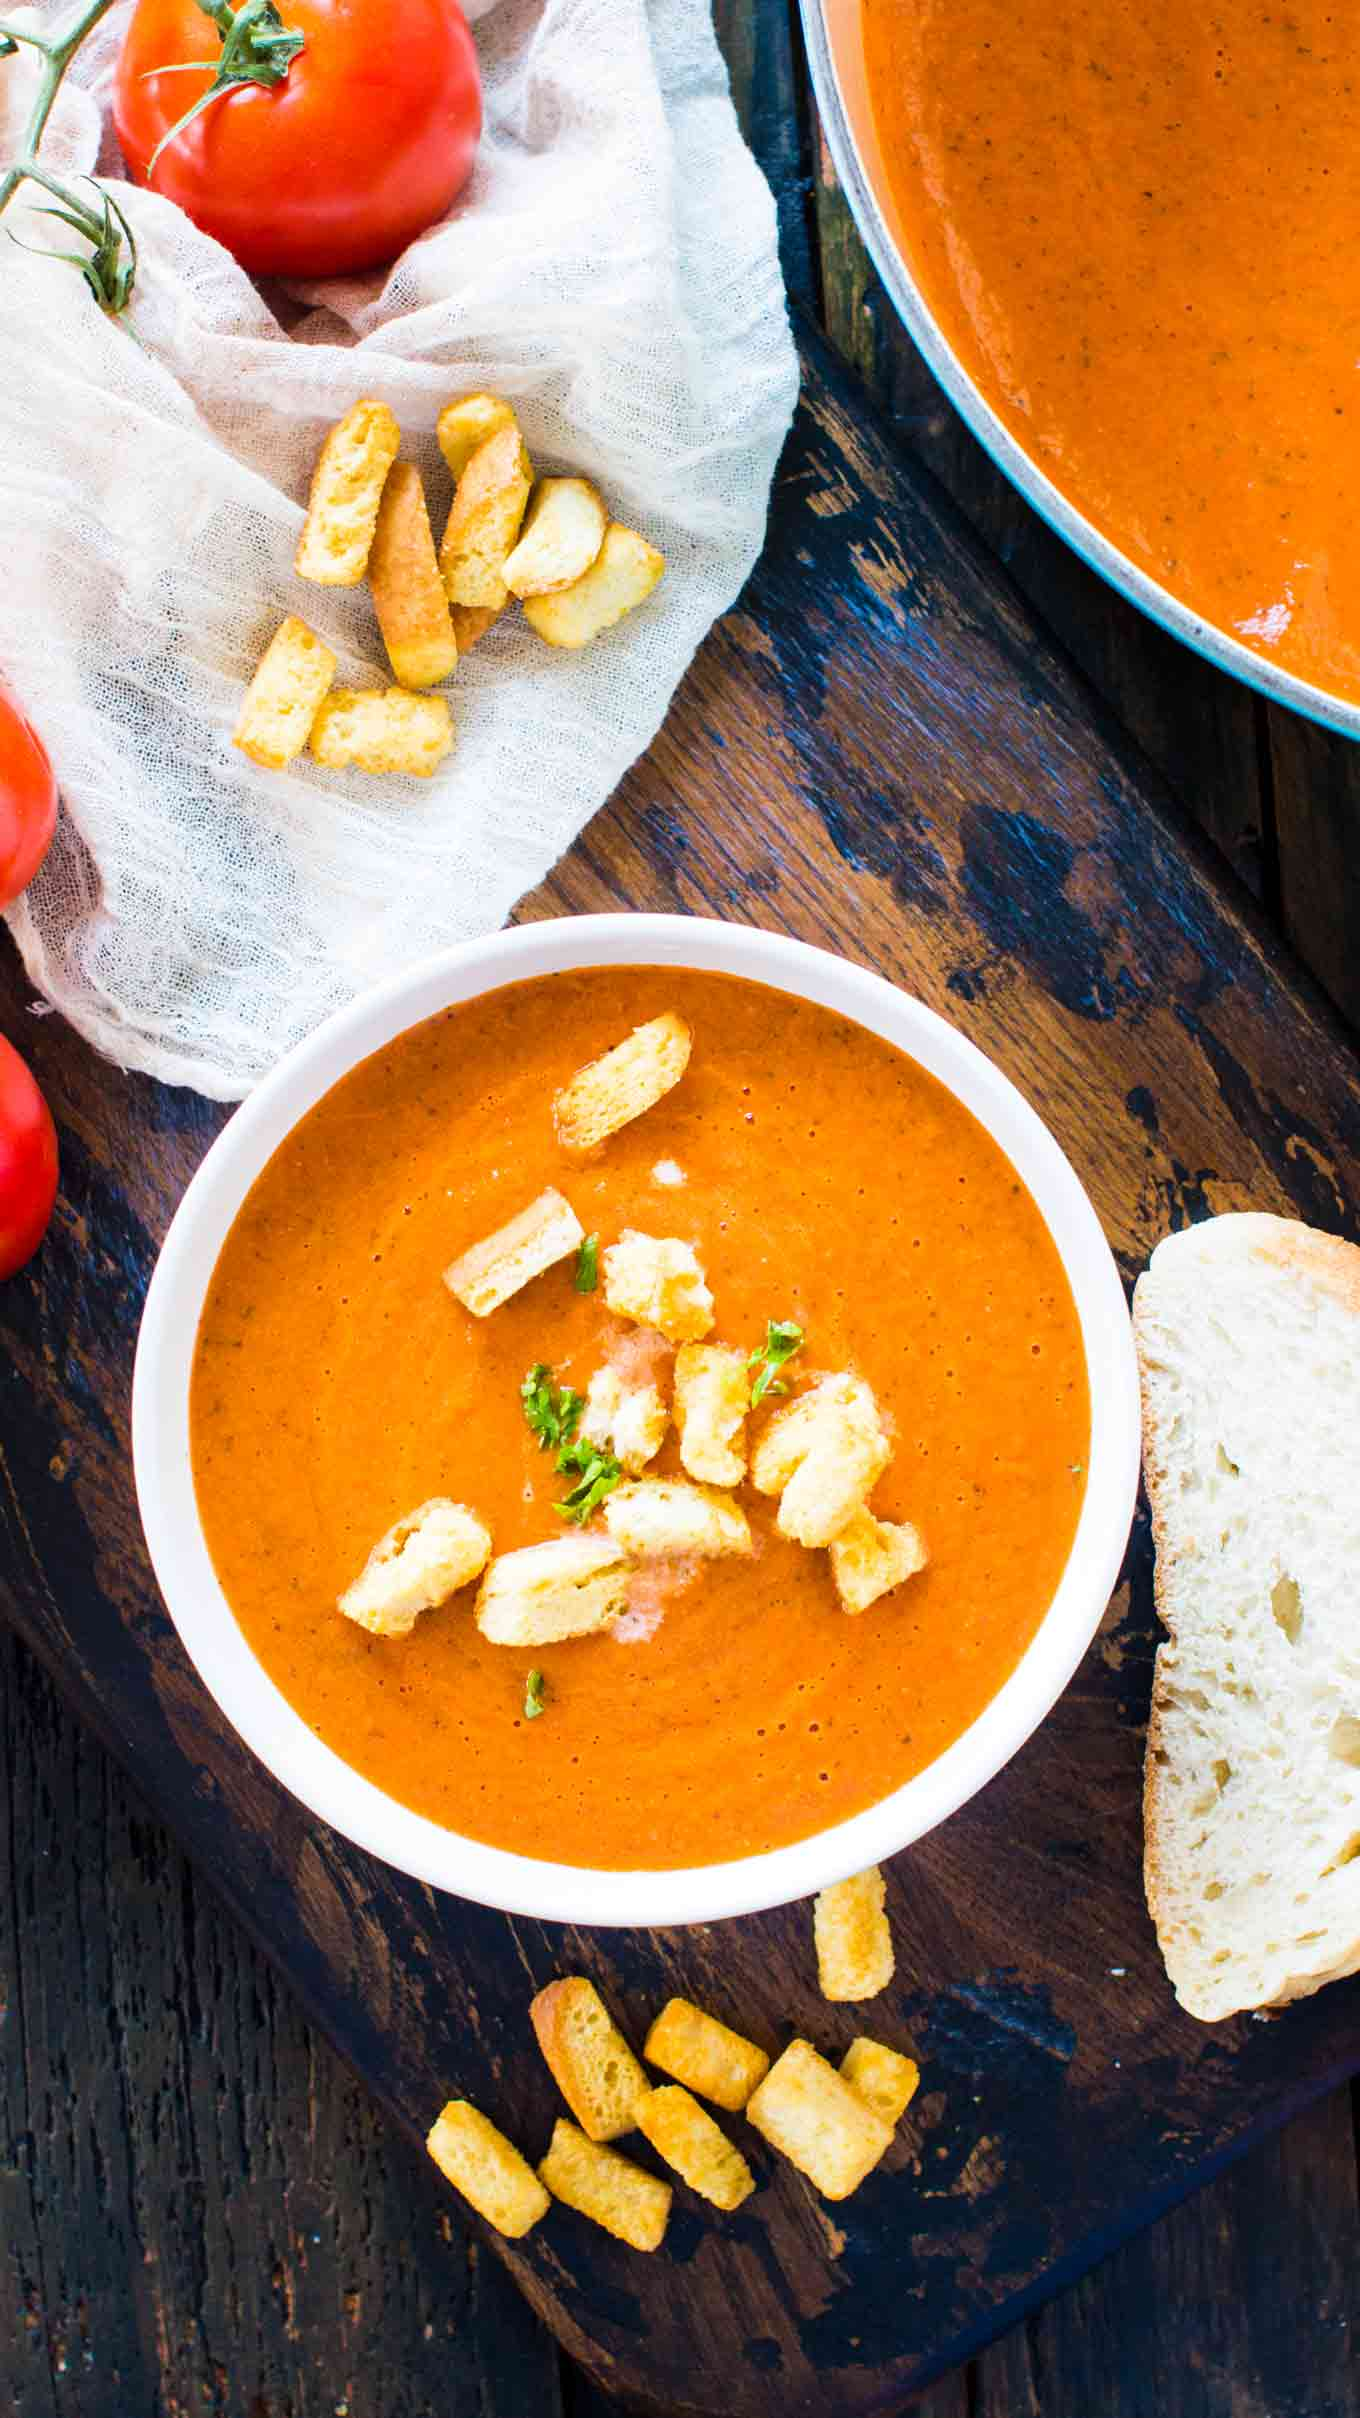 Panera Bread Soups Copycat recipe for their Panera Bread Creamy Tomato Soup. The chain's classic, famous, creamy soup that will warm your soul and make your taste buds happy.